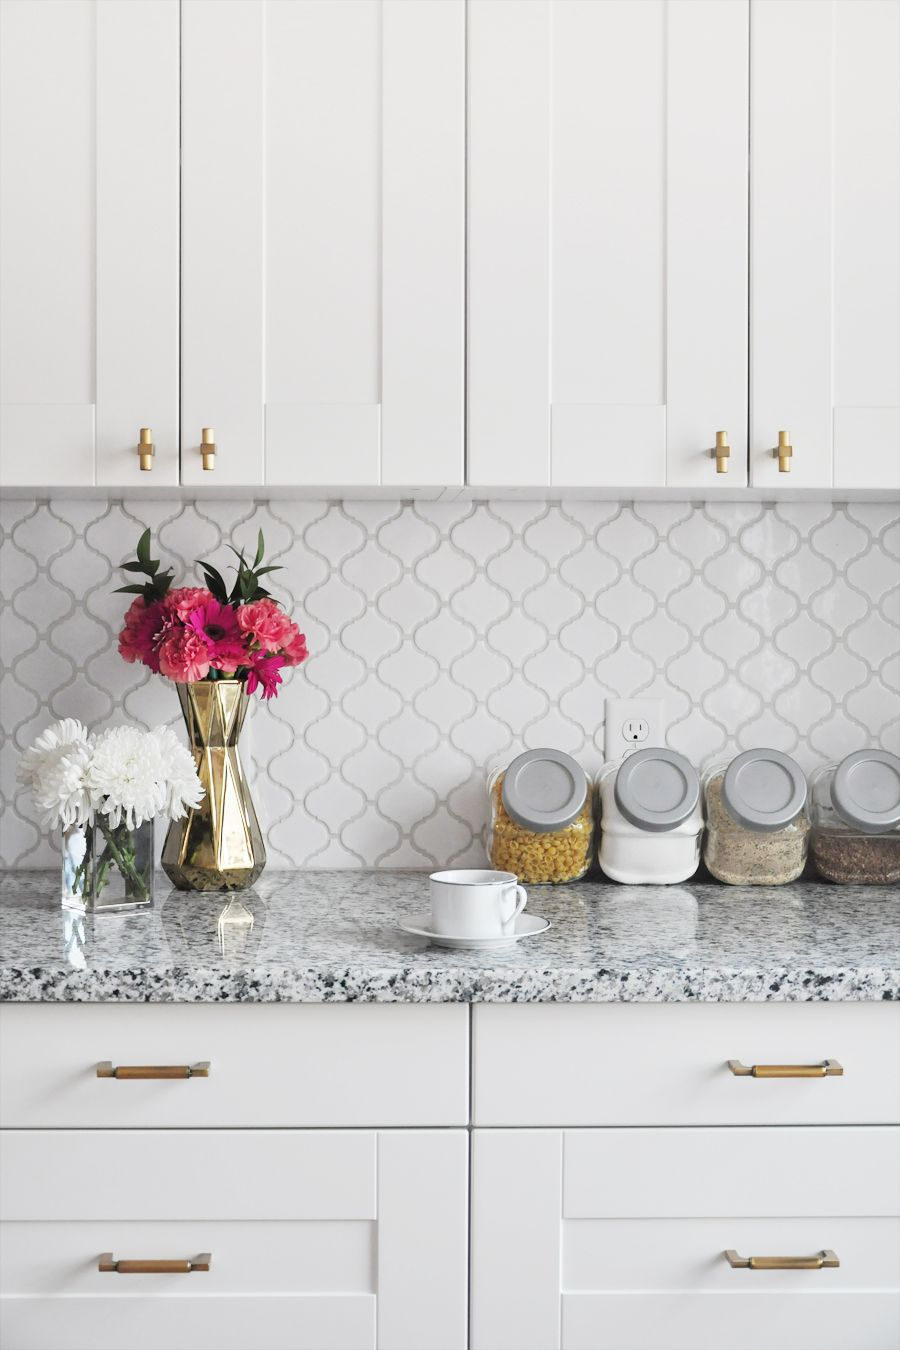 How To Tile A Kitchen Backsplash Diy Tutorial Diy Kitchen